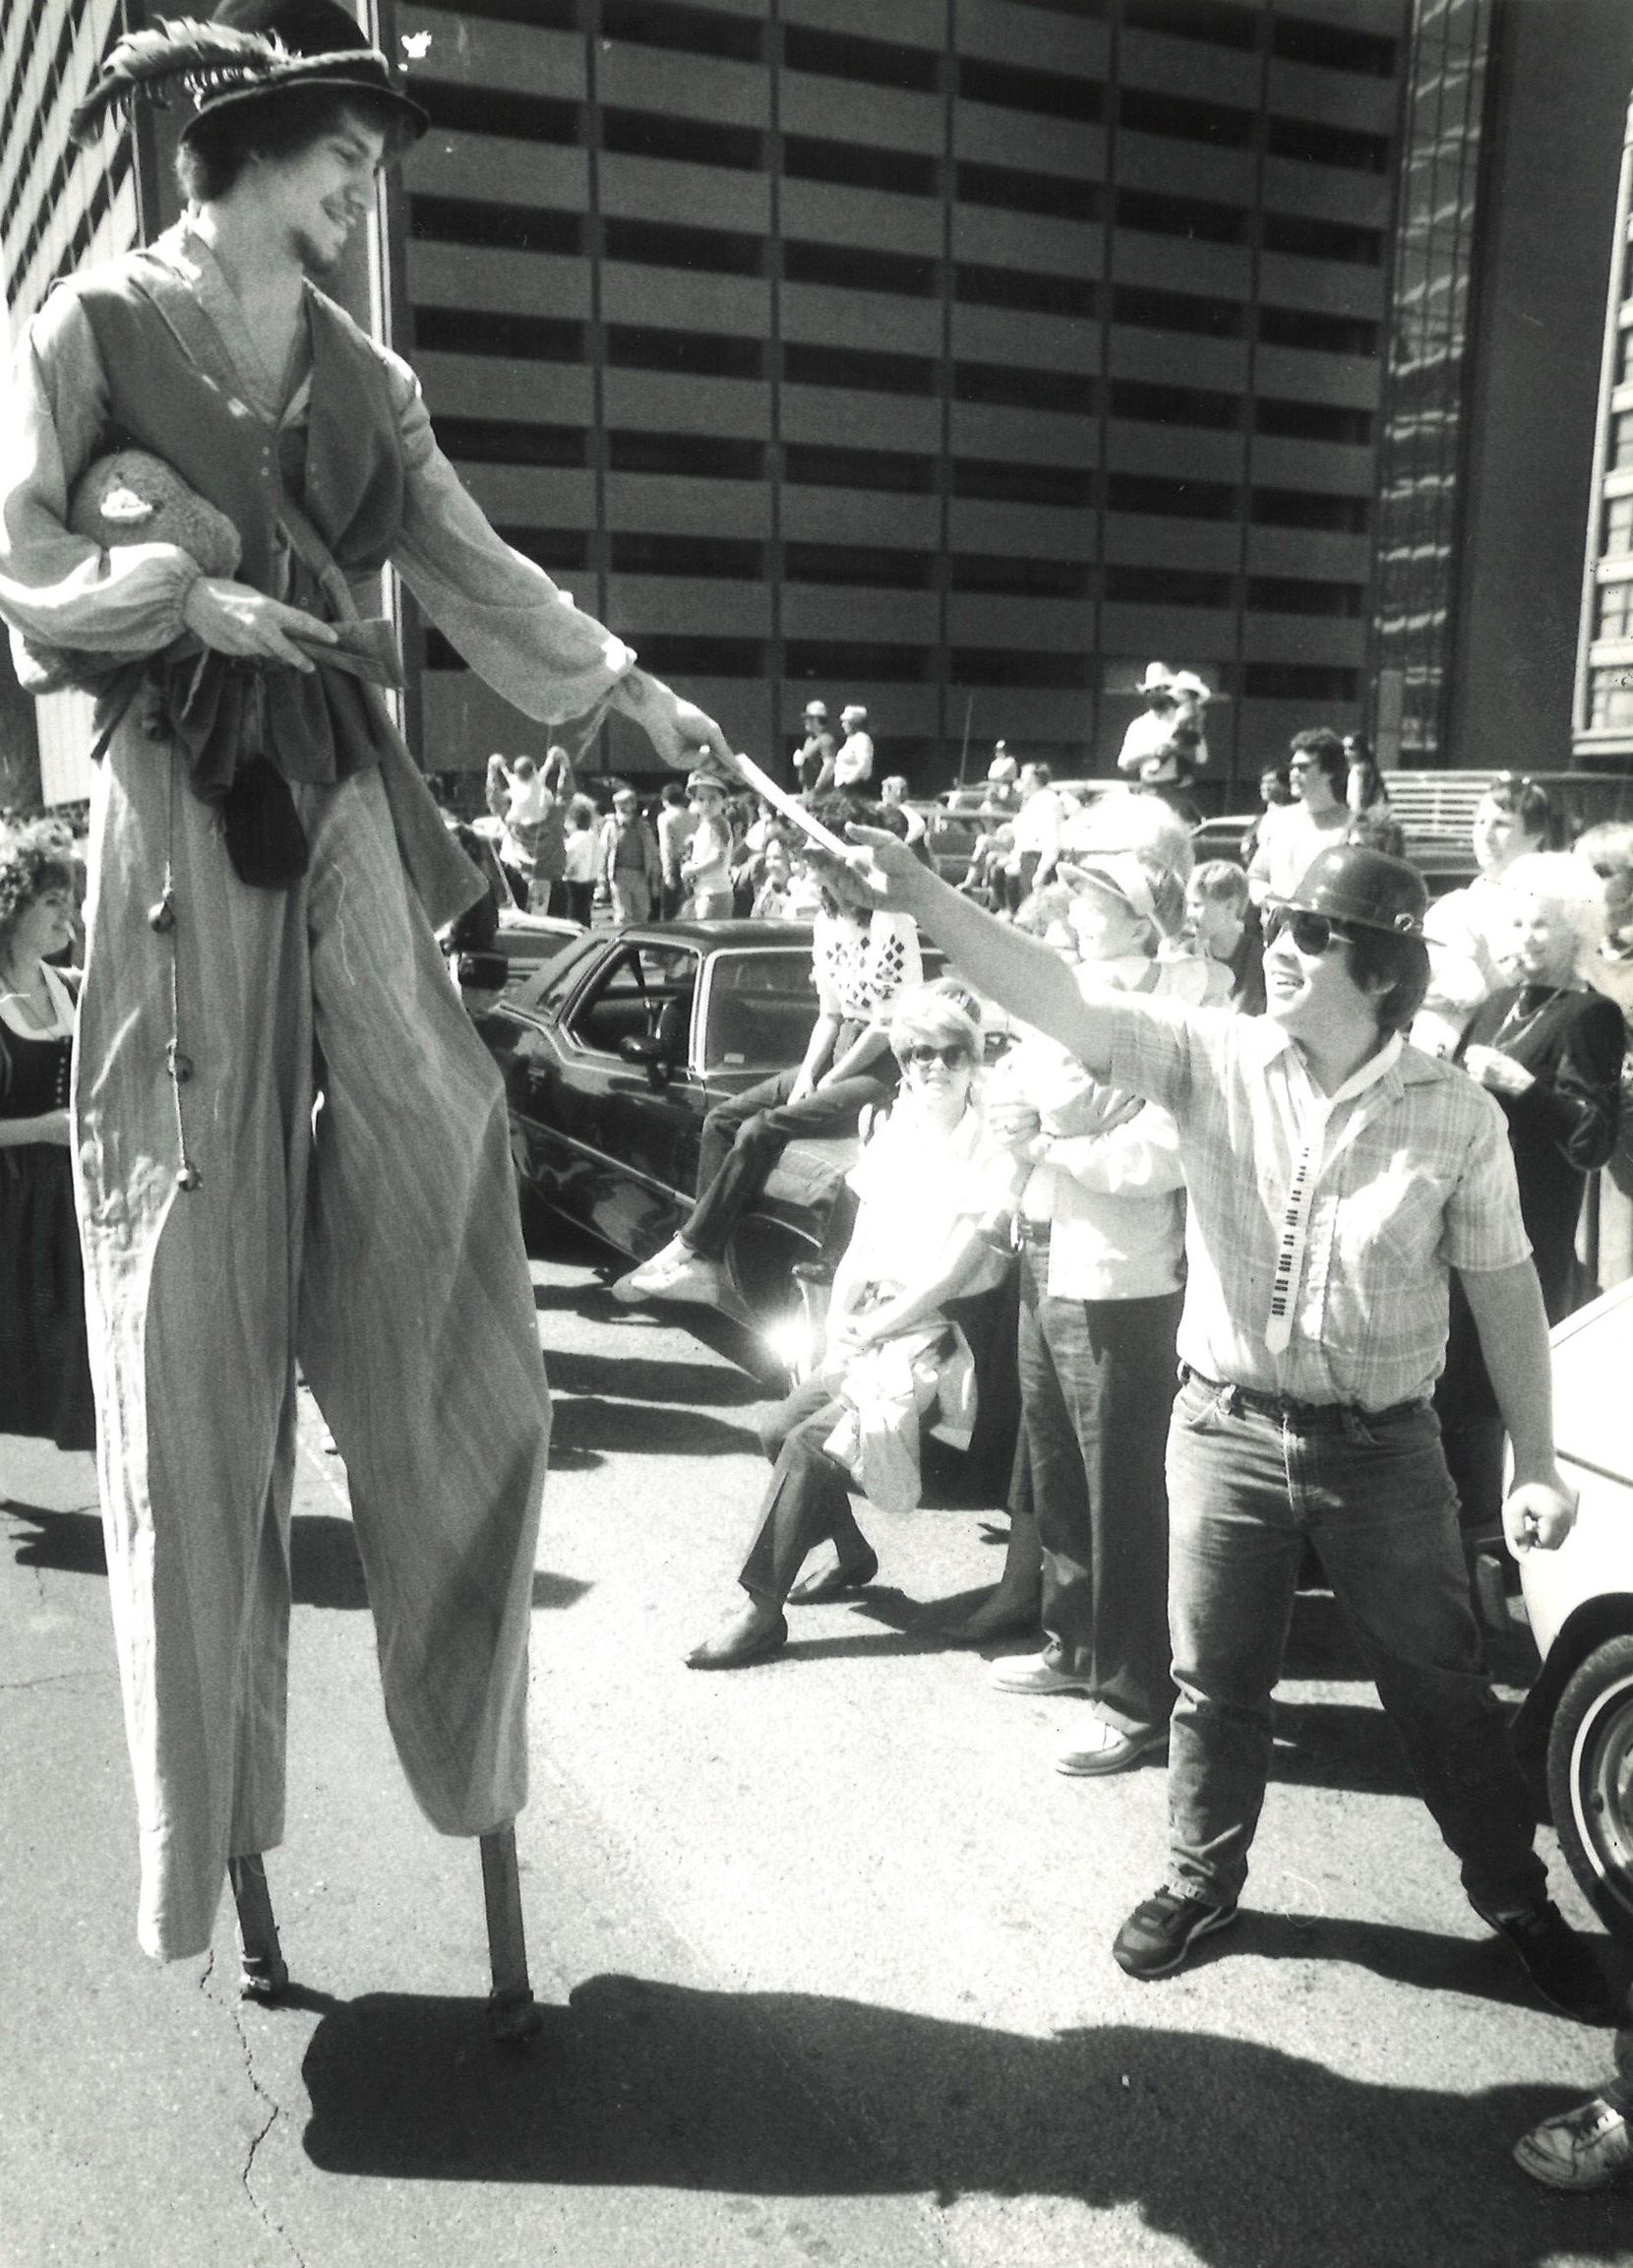 1985: Downtown Dallas St. Patrick's Day revelers.